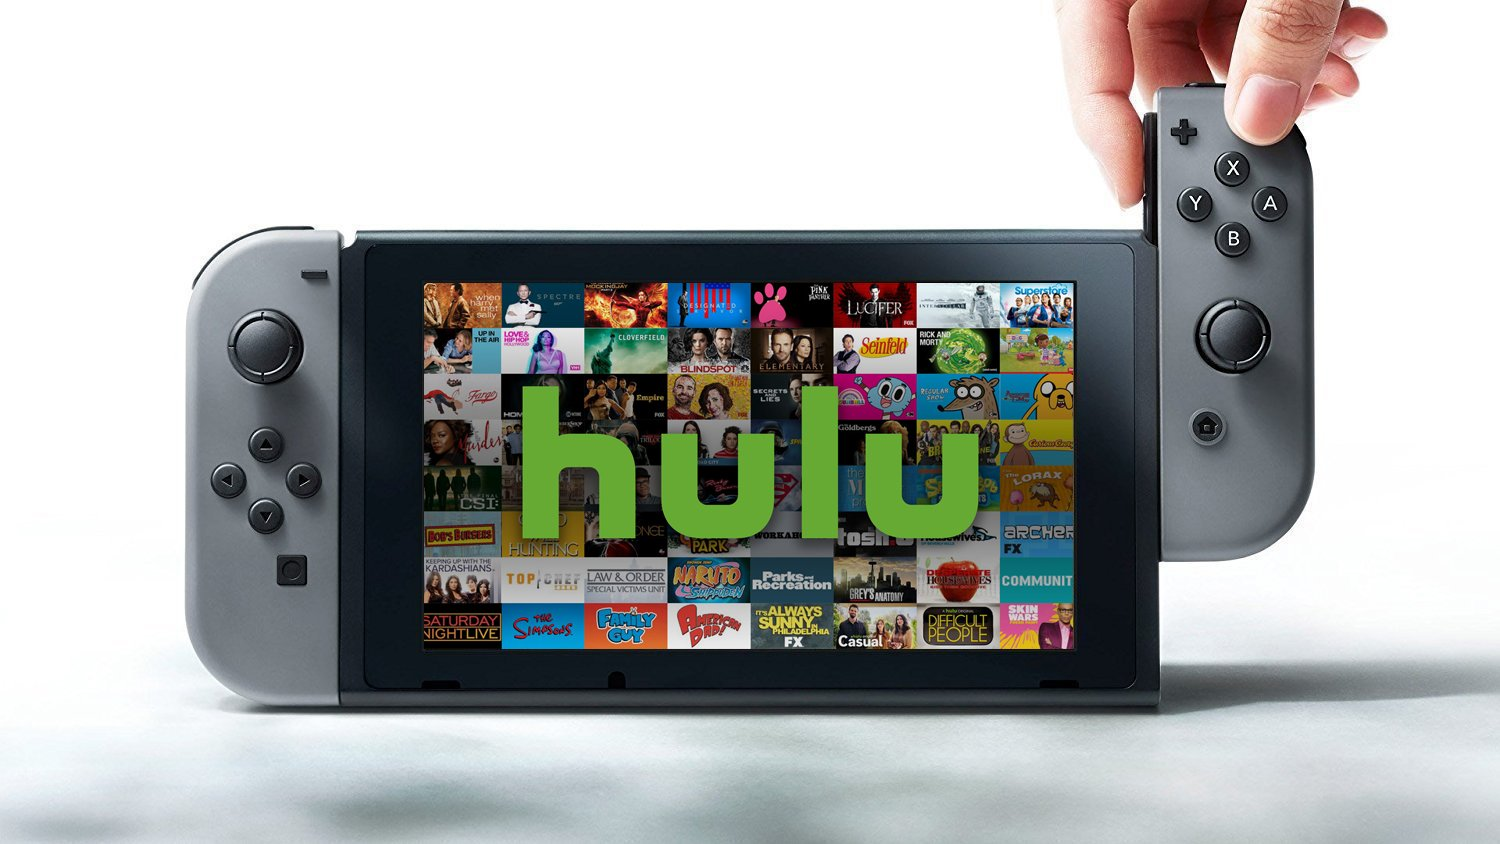 Hulu is Nintendo's first video streaming app for the Switch https://t.co/3ssuPZO7zQ by @etherington https://t.co/LrW8gTocoW